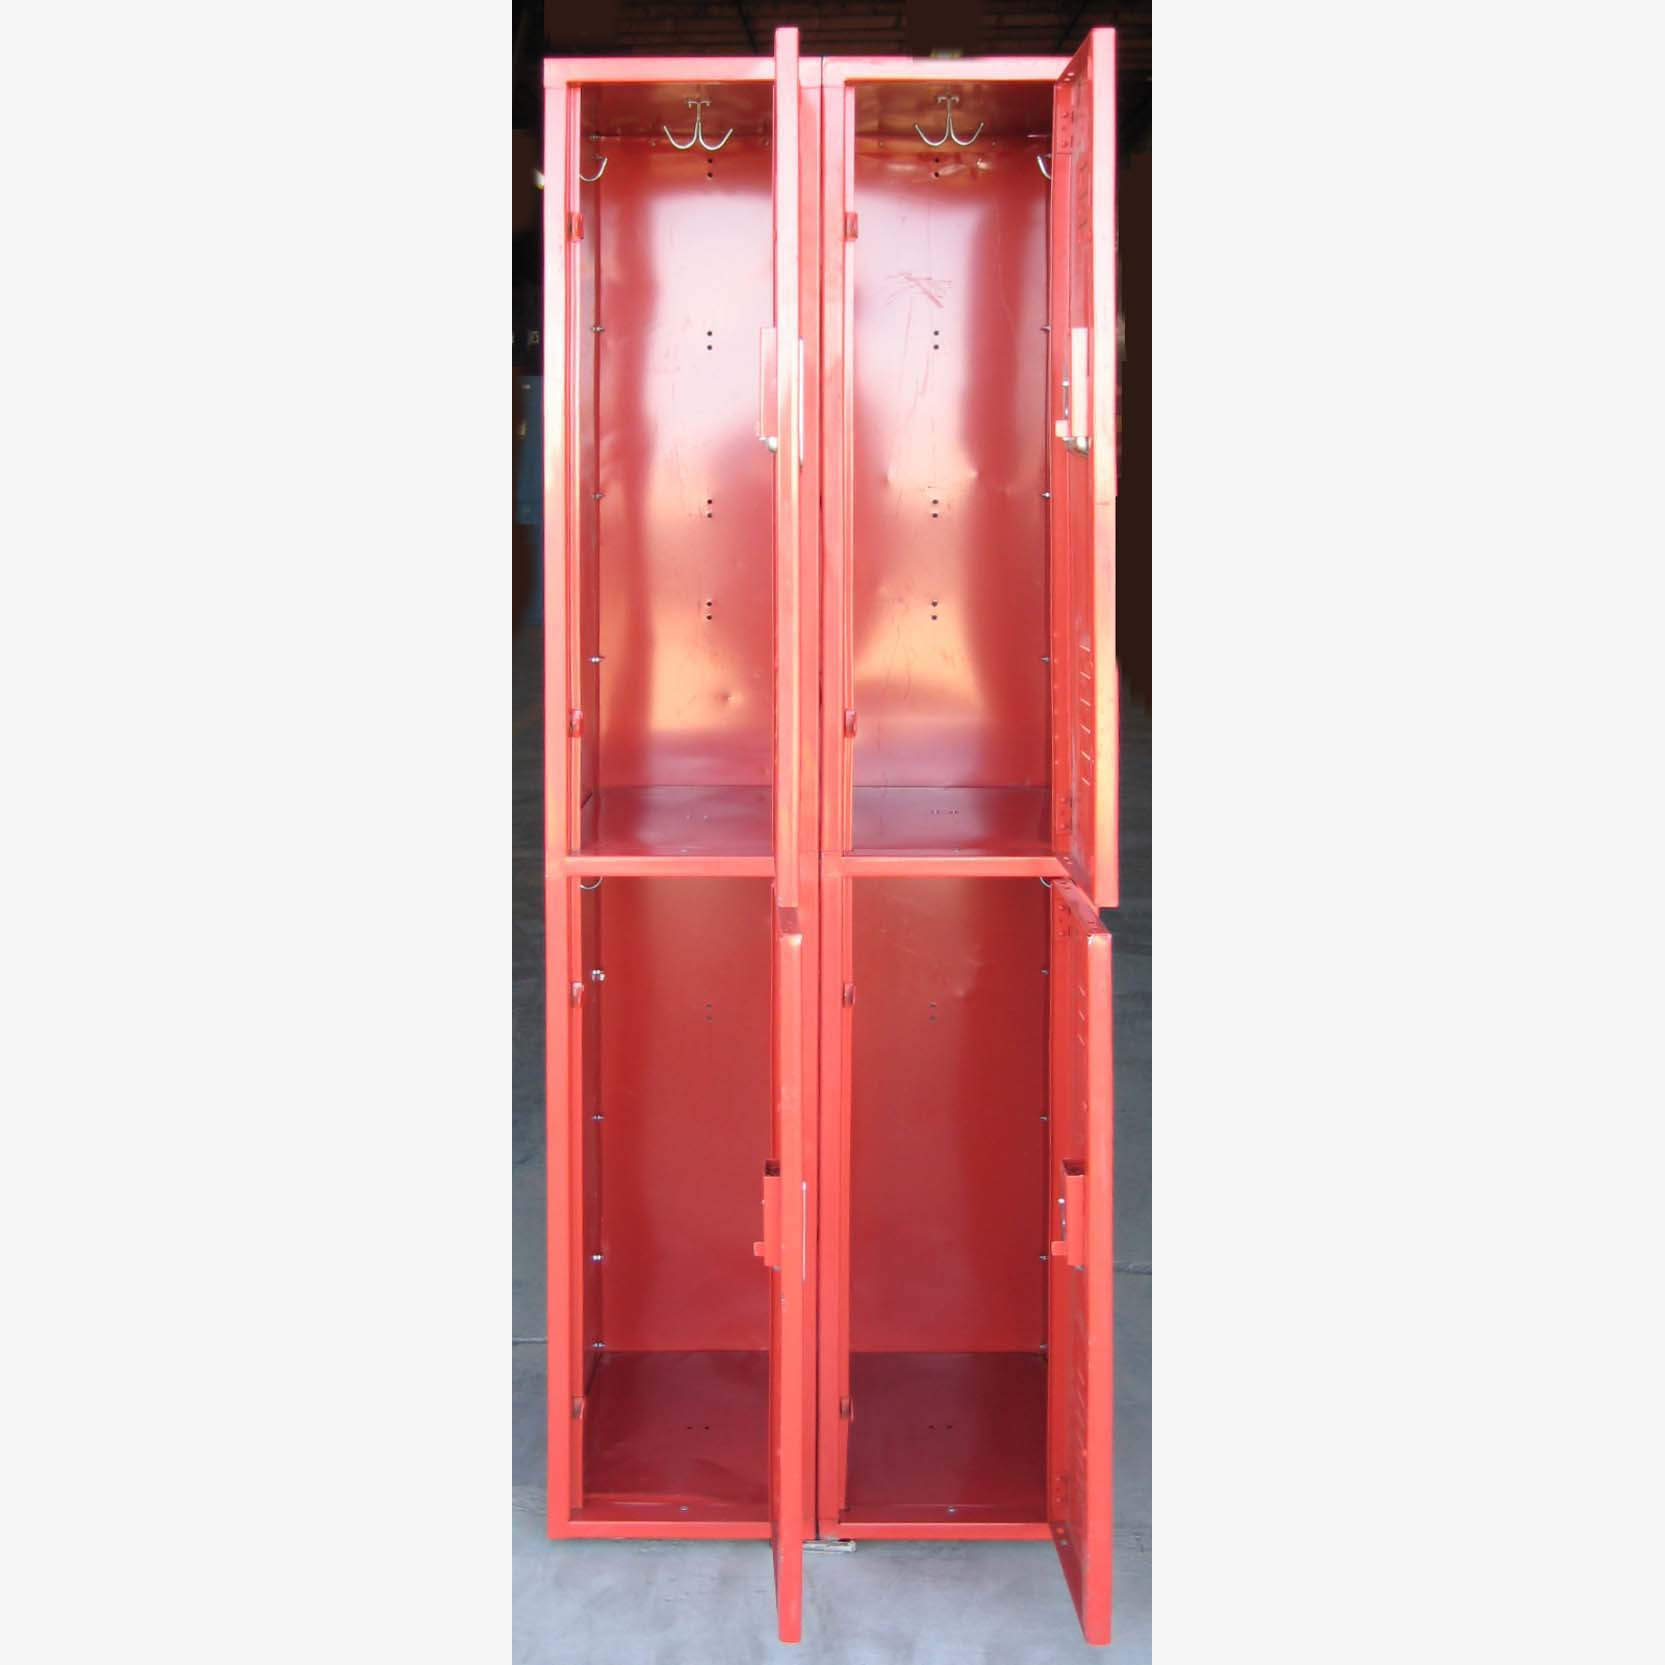 Double Tier Used School Lockersimage 2 image 2